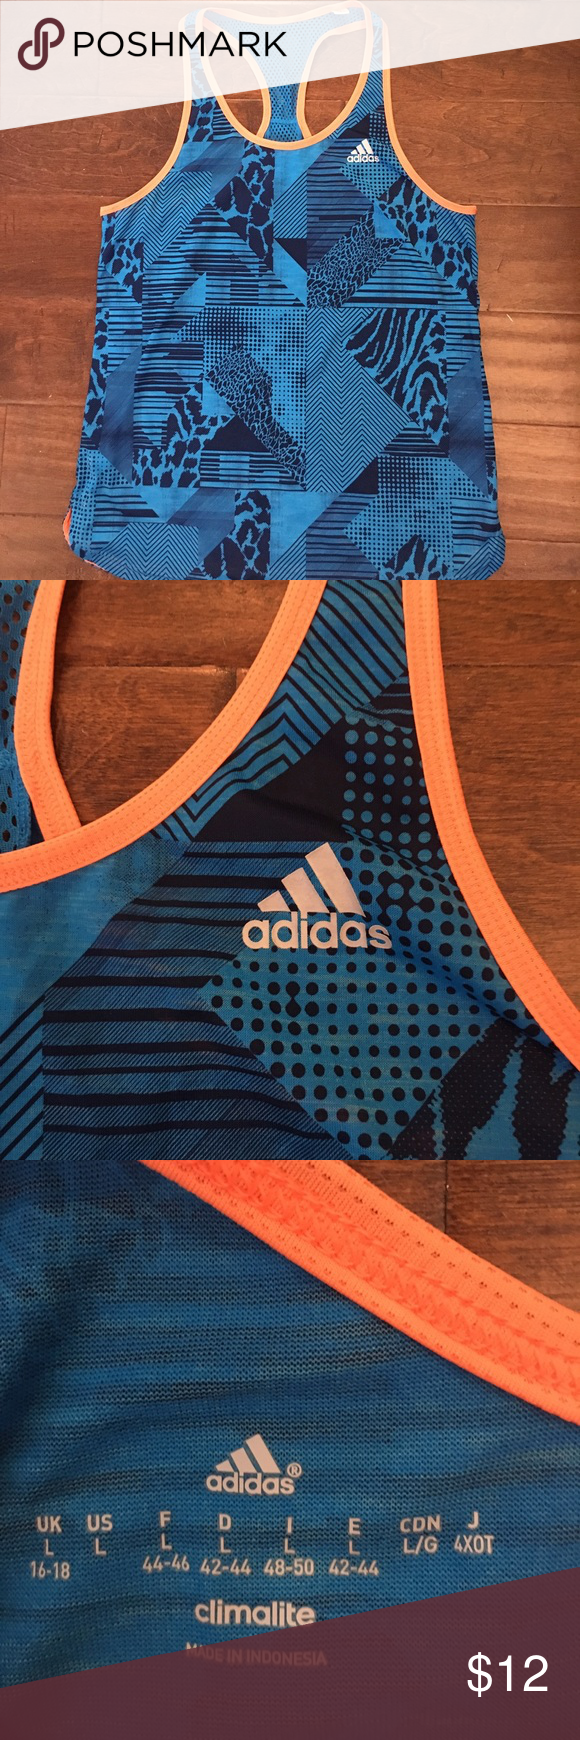 Get your workout on Need a new workout tank??? Here it is!!! Go out sporting in your Adidas bright blue and orange. Size large and in excellent condition Adidas Tops Tank Tops